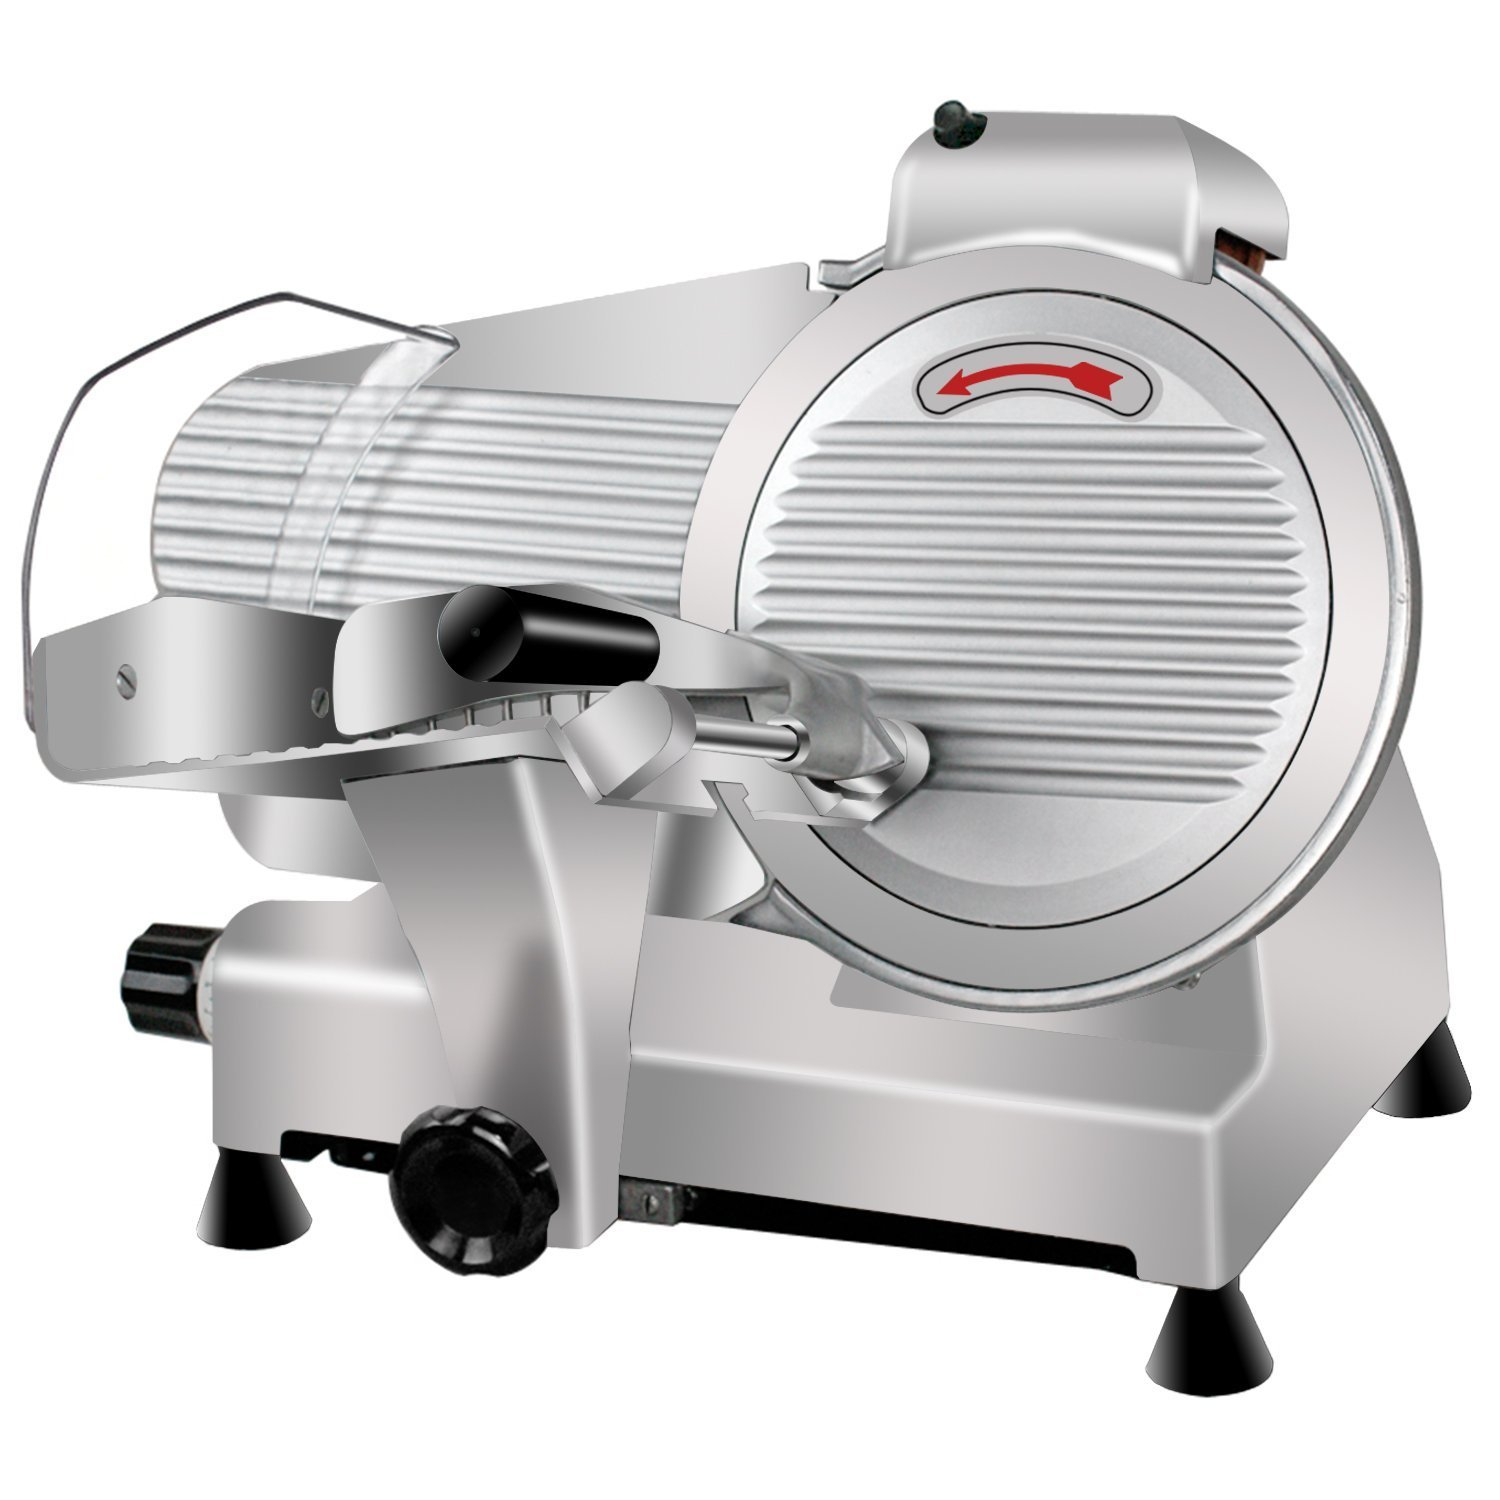 The Best commercial meat slicer - Our pick